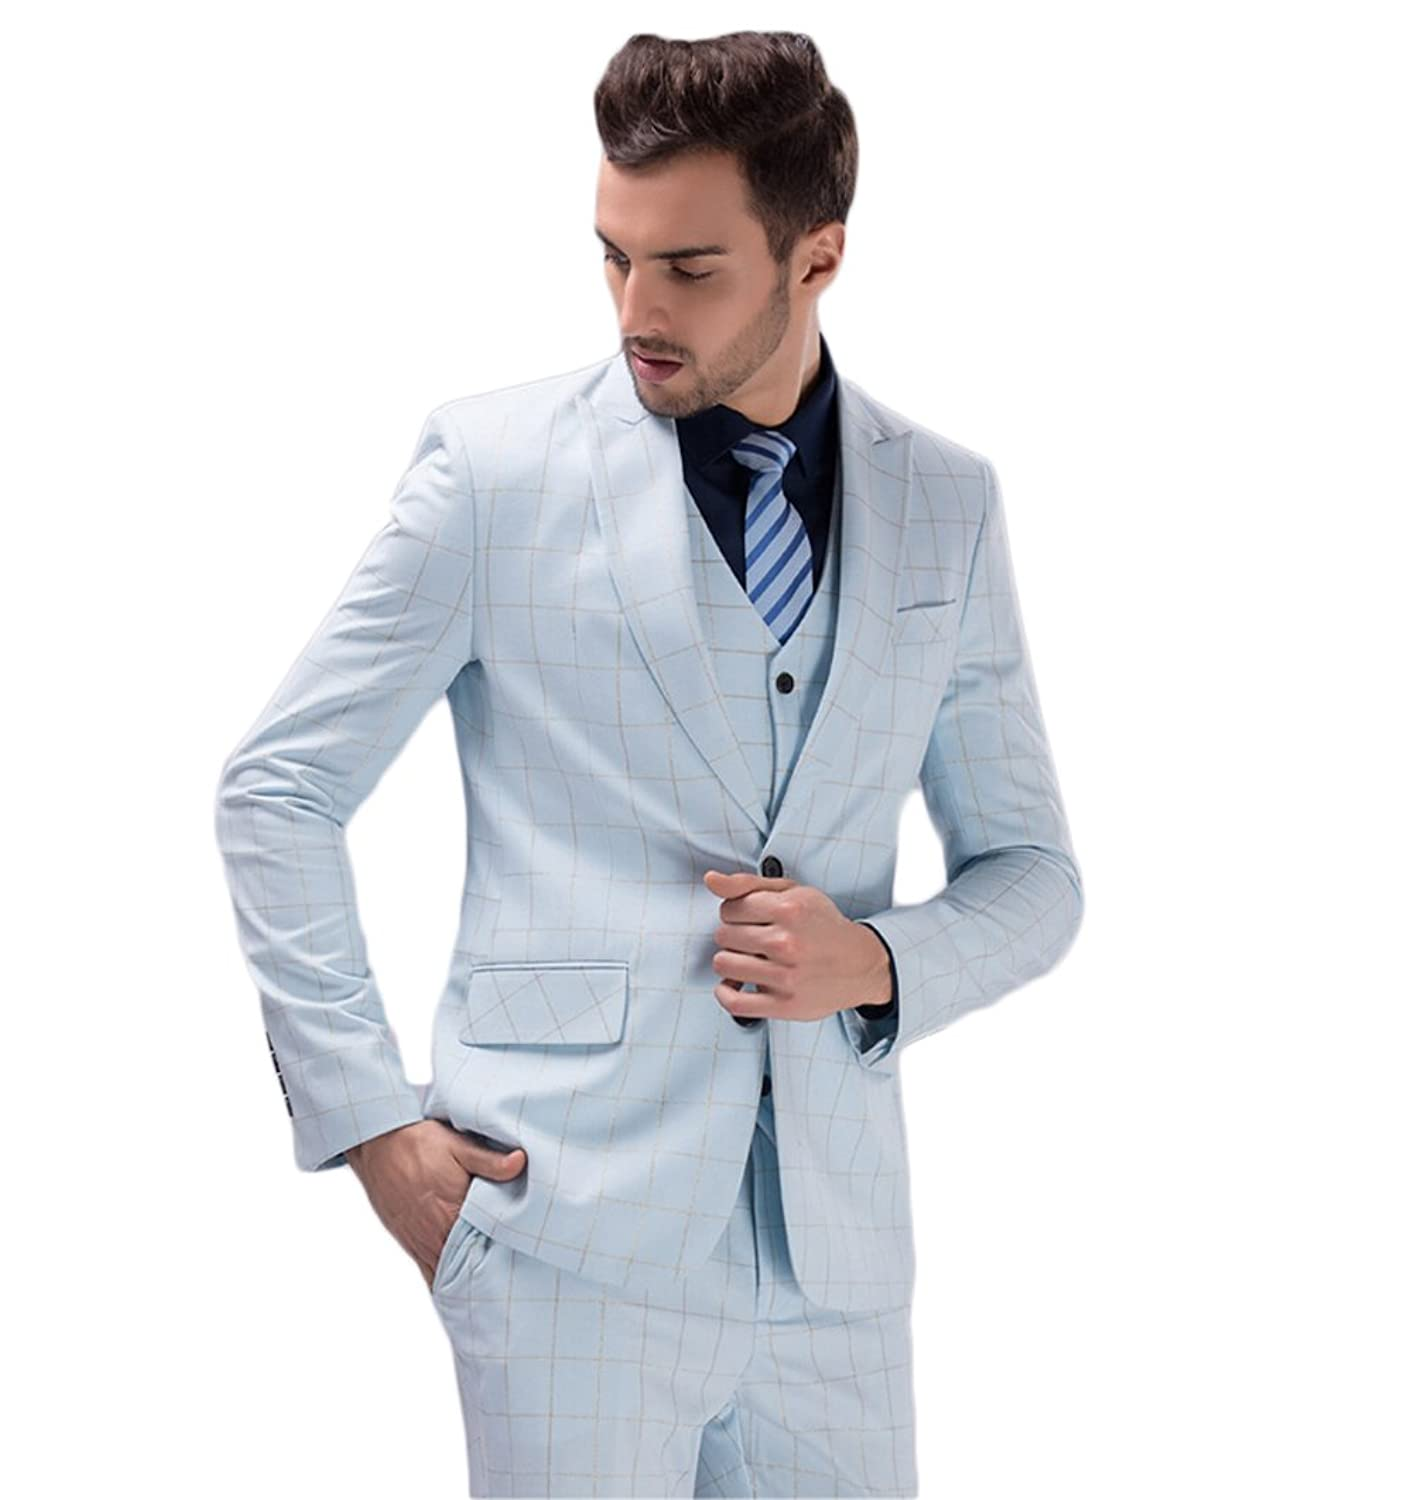 on sale Love Dress Men\'s Thin White and Light Blue 3-Piece Wedding ...